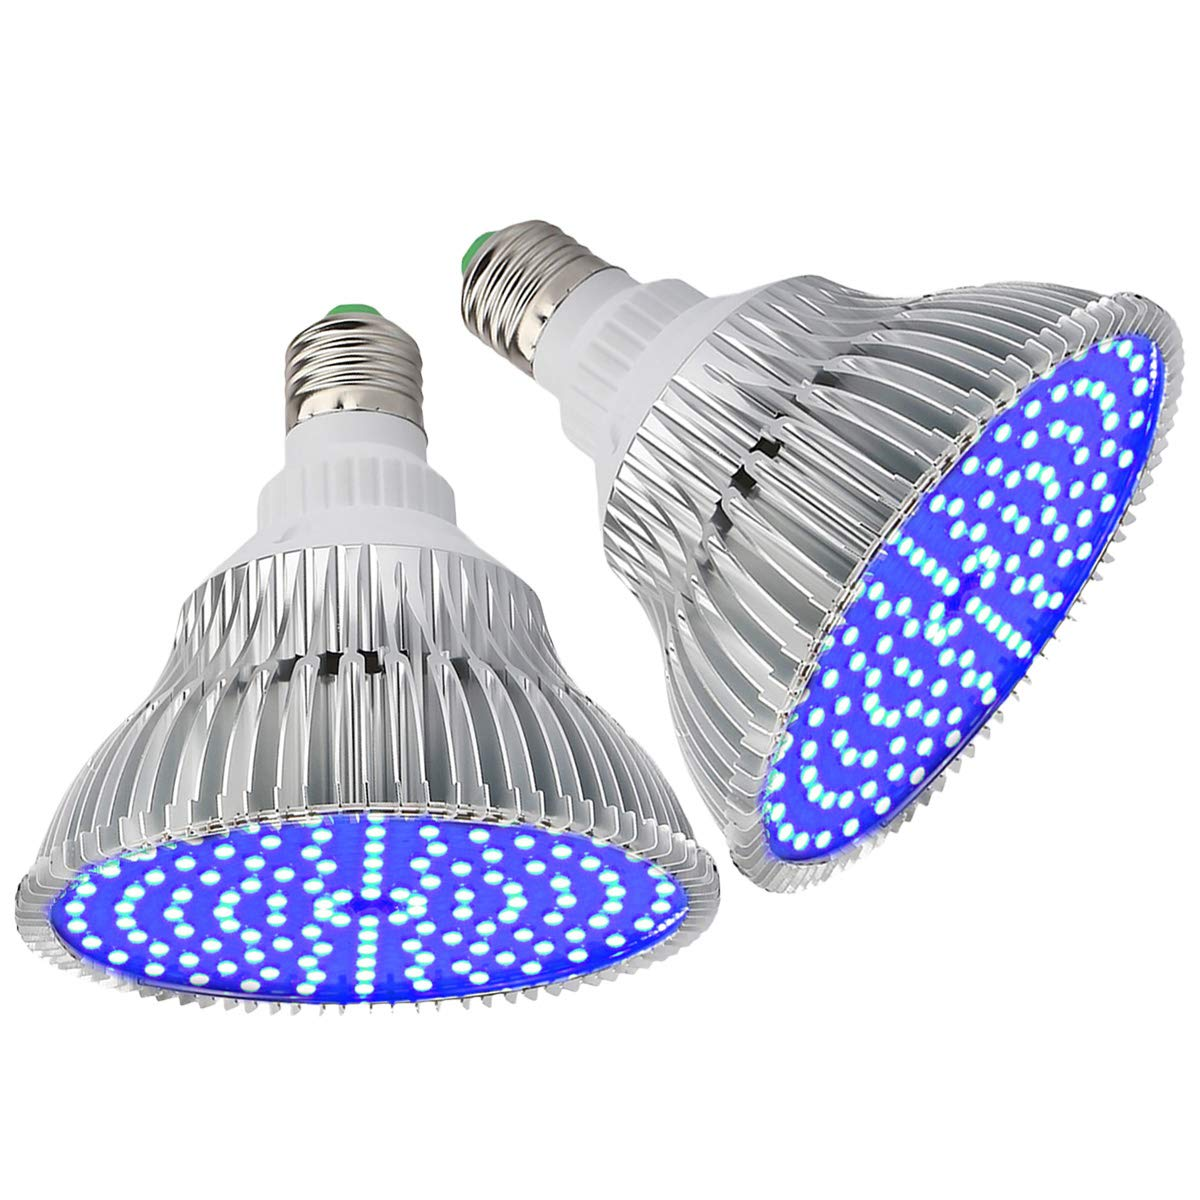 (Pack of 2) Byingo LED Grow Light Bulb - 50W (250W Equivalent) 450-460nm All Deep Blue Spectrum - Aluminum Shell with Good Heat Dissipation - for Indoor Plants Flowering and Fruiting 71cG8cF7tUL